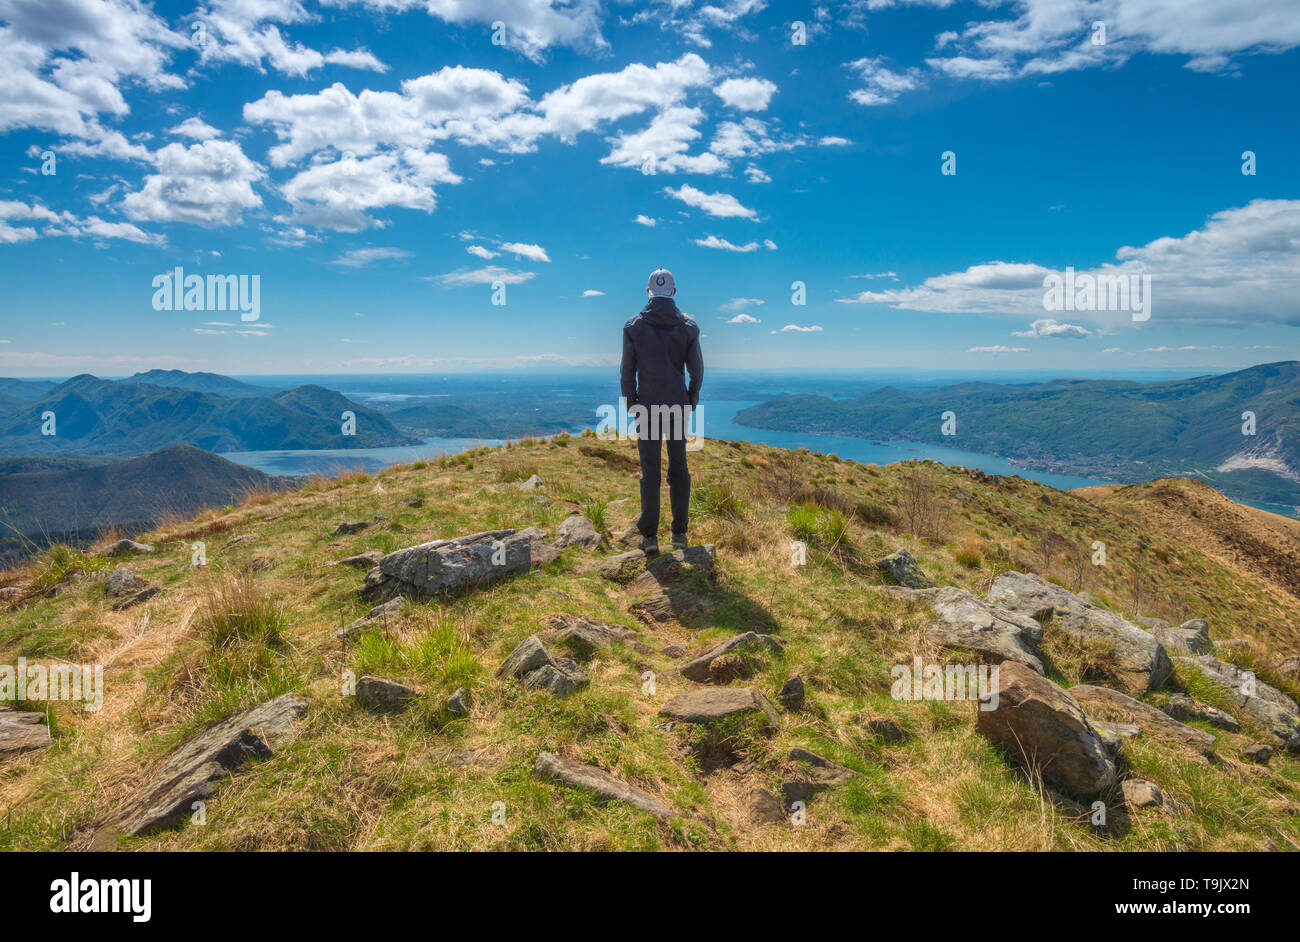 Lonely man, lone male hiker looks at Lake Maggiore from the summit of a nearby mountain. Summit view, solitude on the top, hiker on the trail. Stock Photo